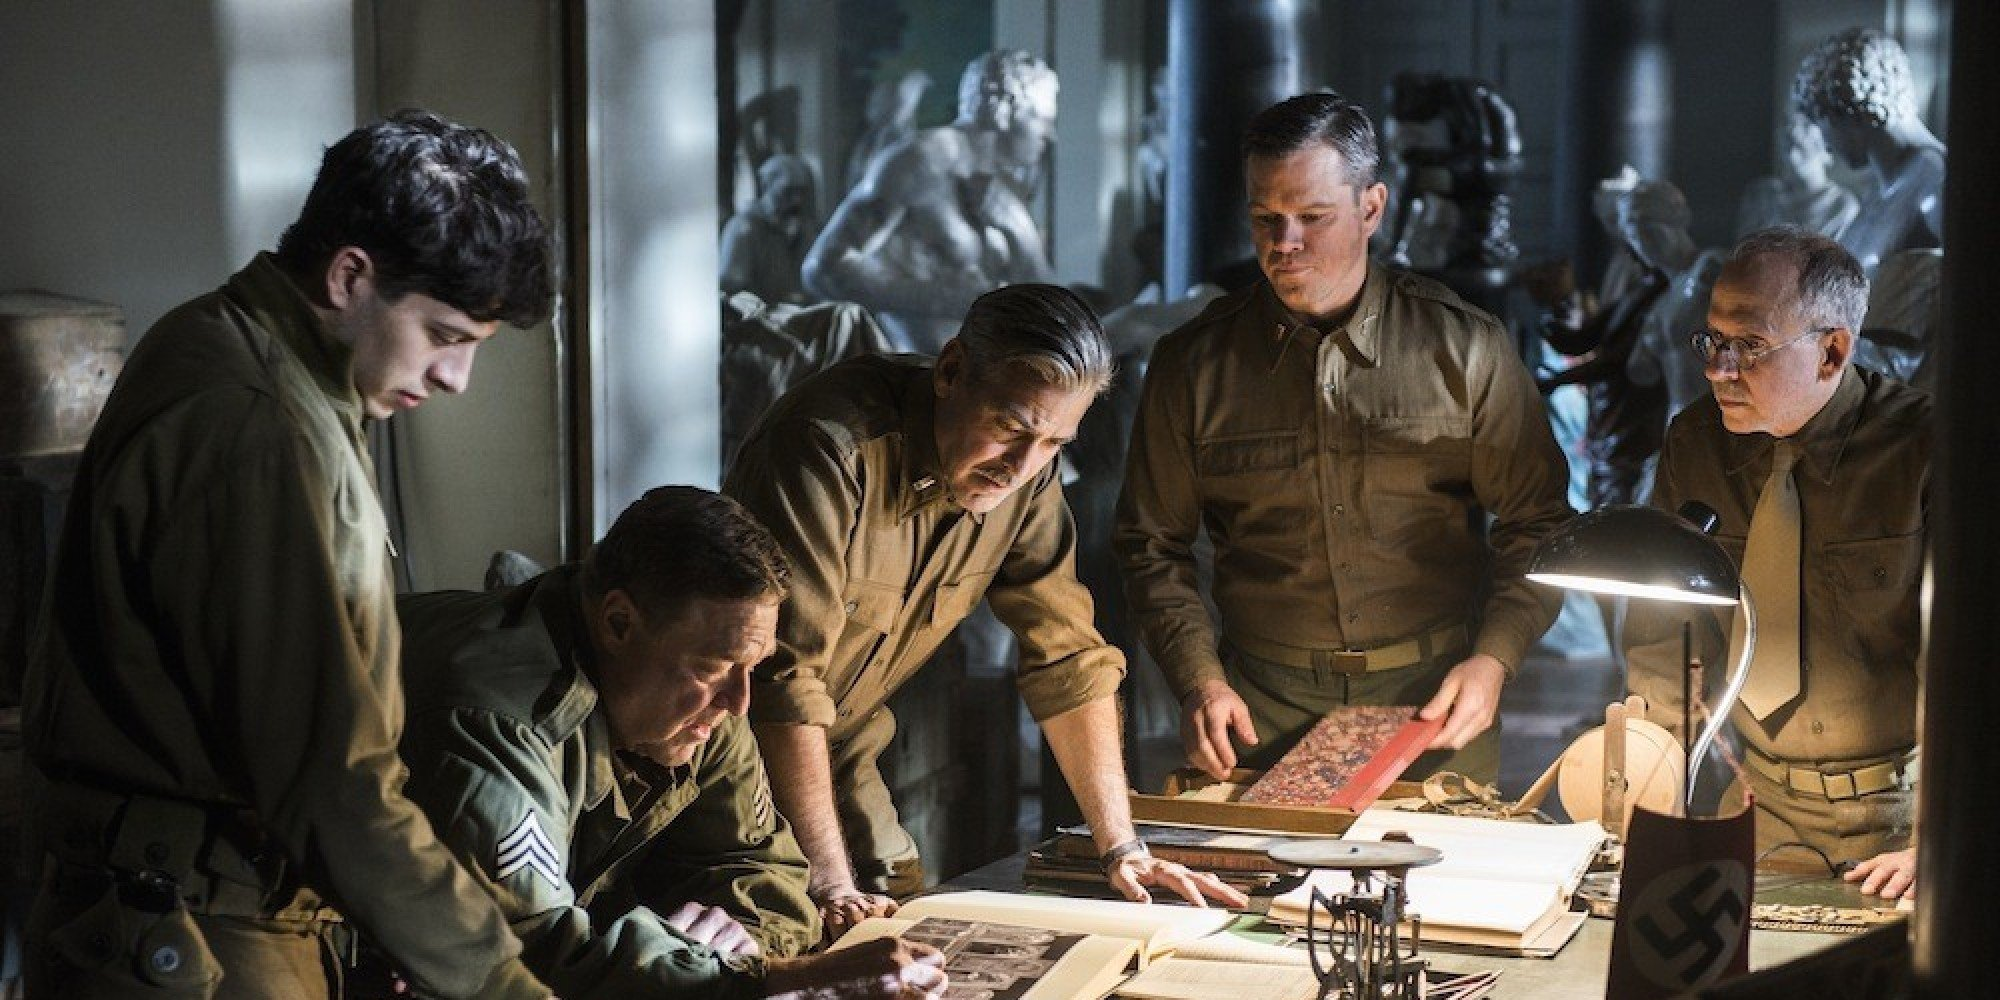 https://www.movieguide.org/wp-content/uploads/2014/05/THE-MONUMENTS-MEN.jpg